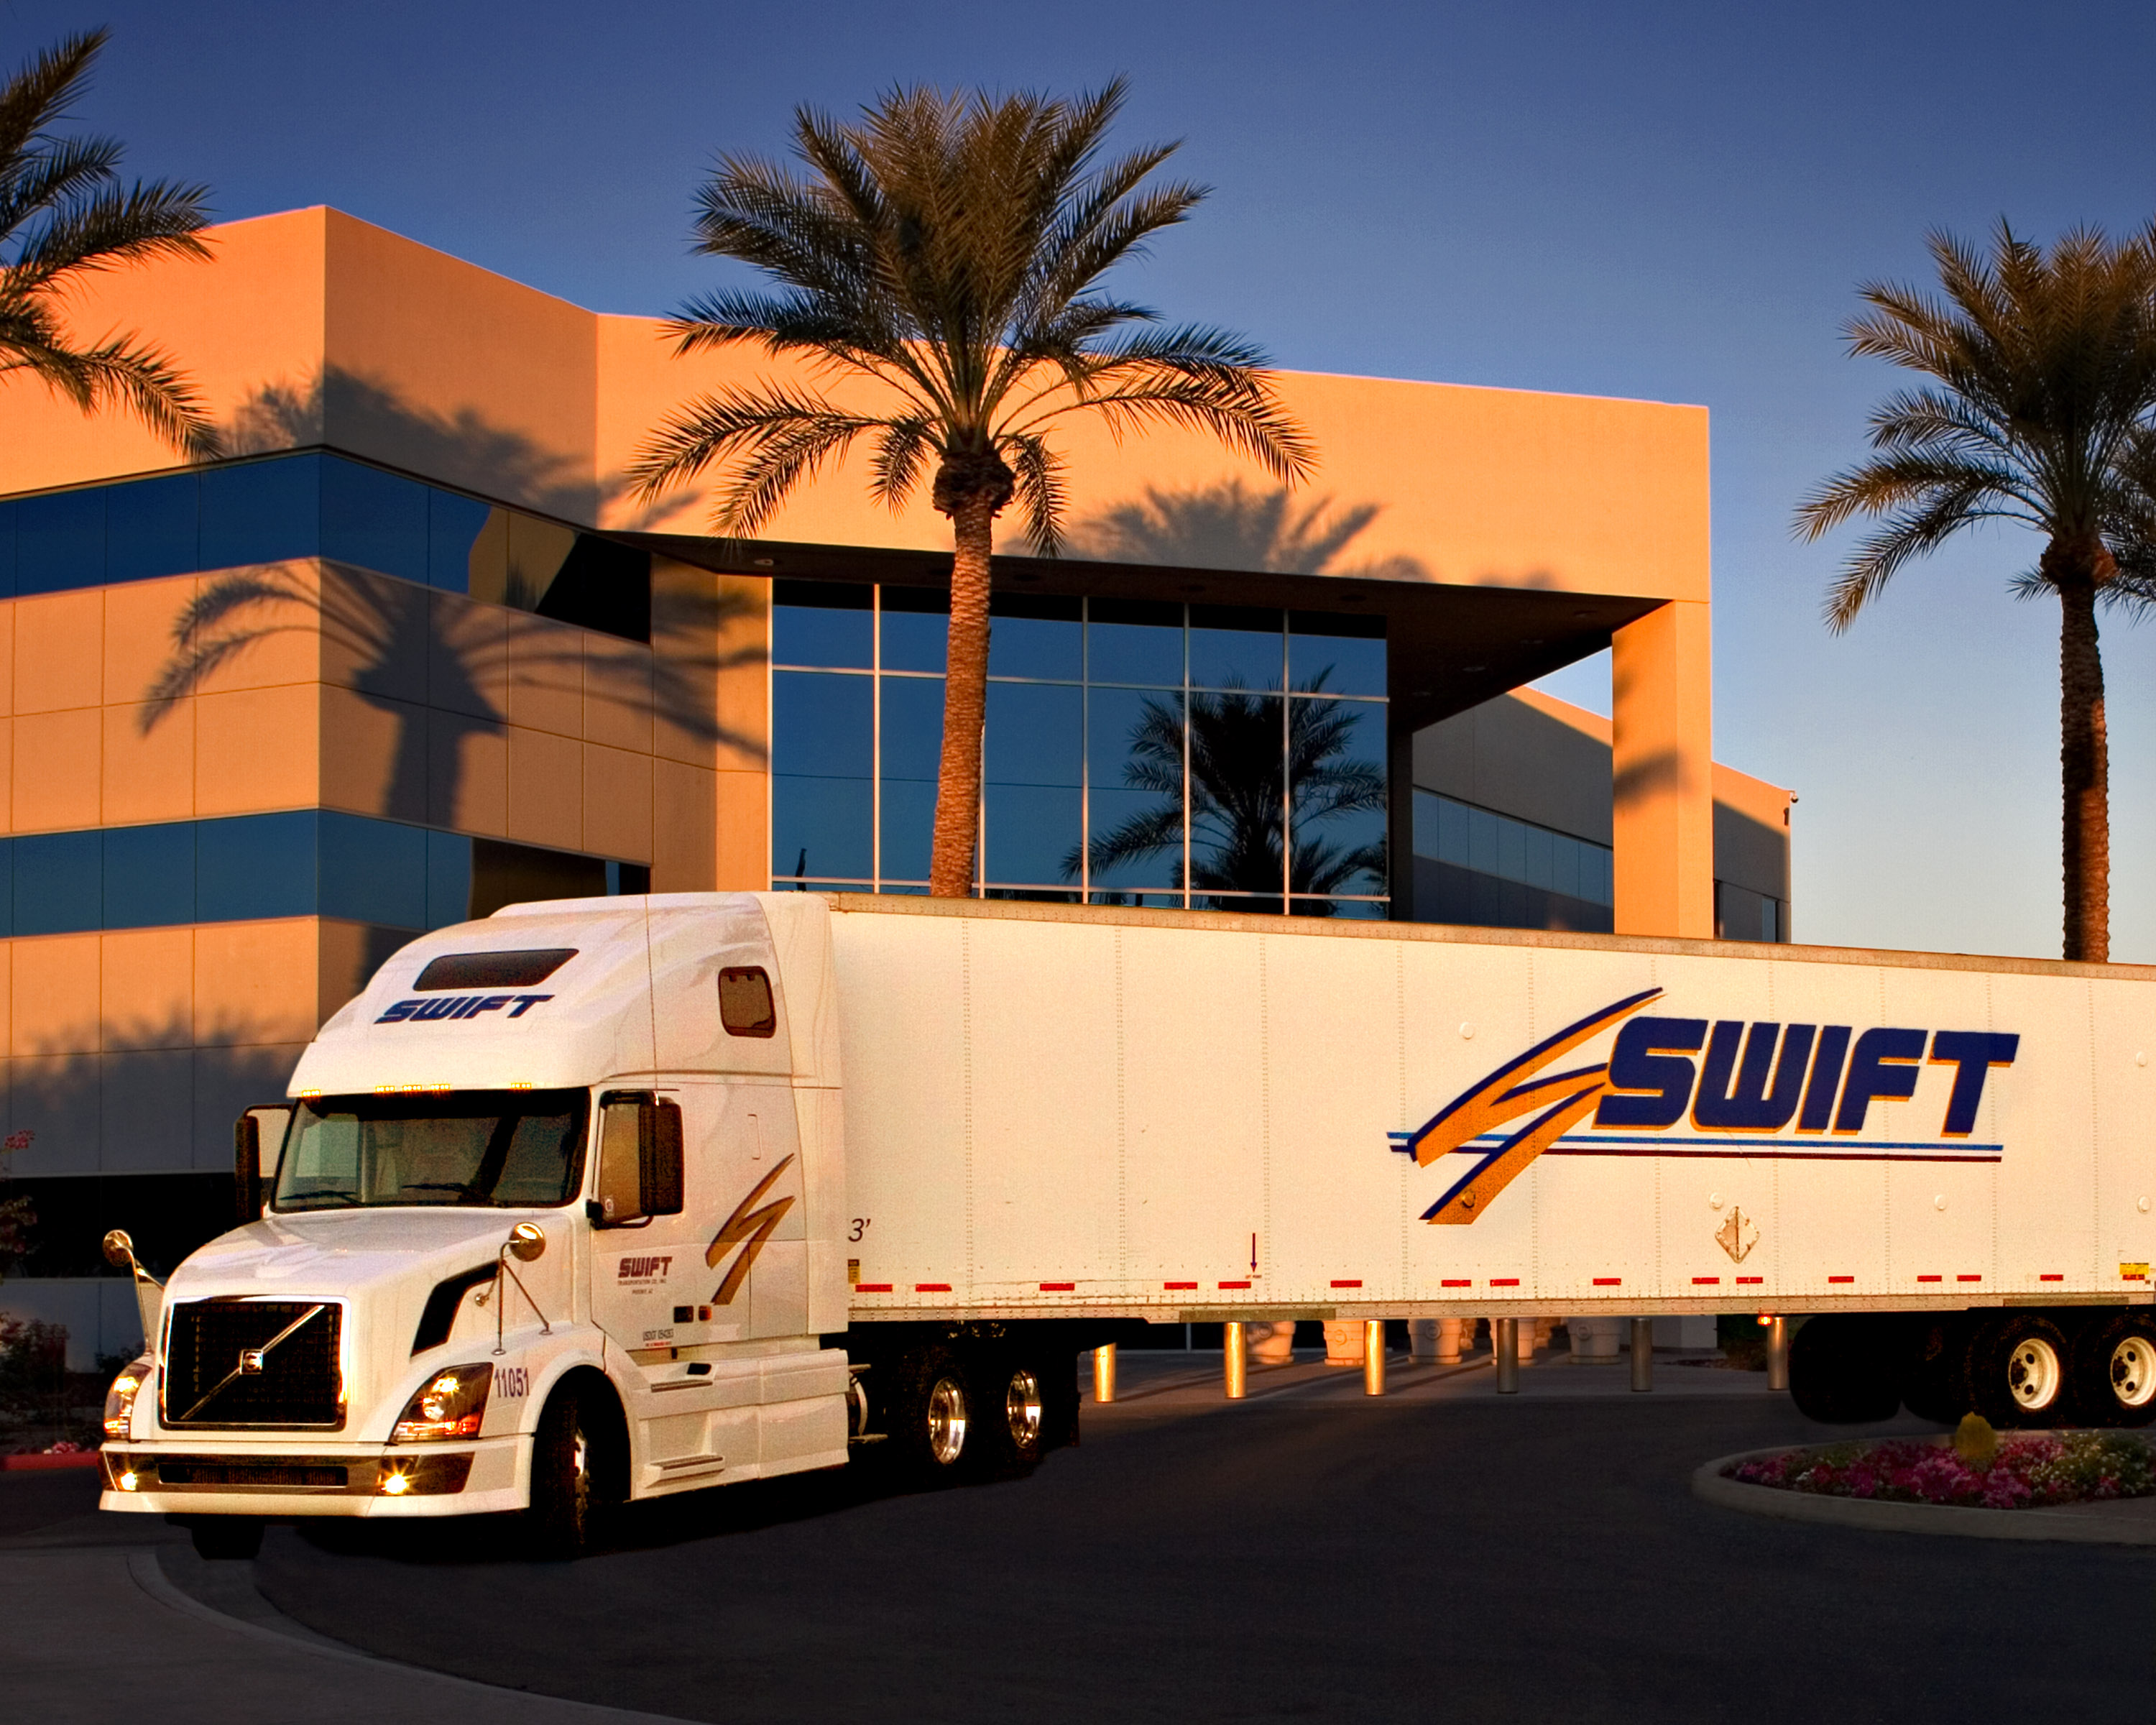 Swift Earnings Increase Due to Pickup in Truckload and Intermodal Operations